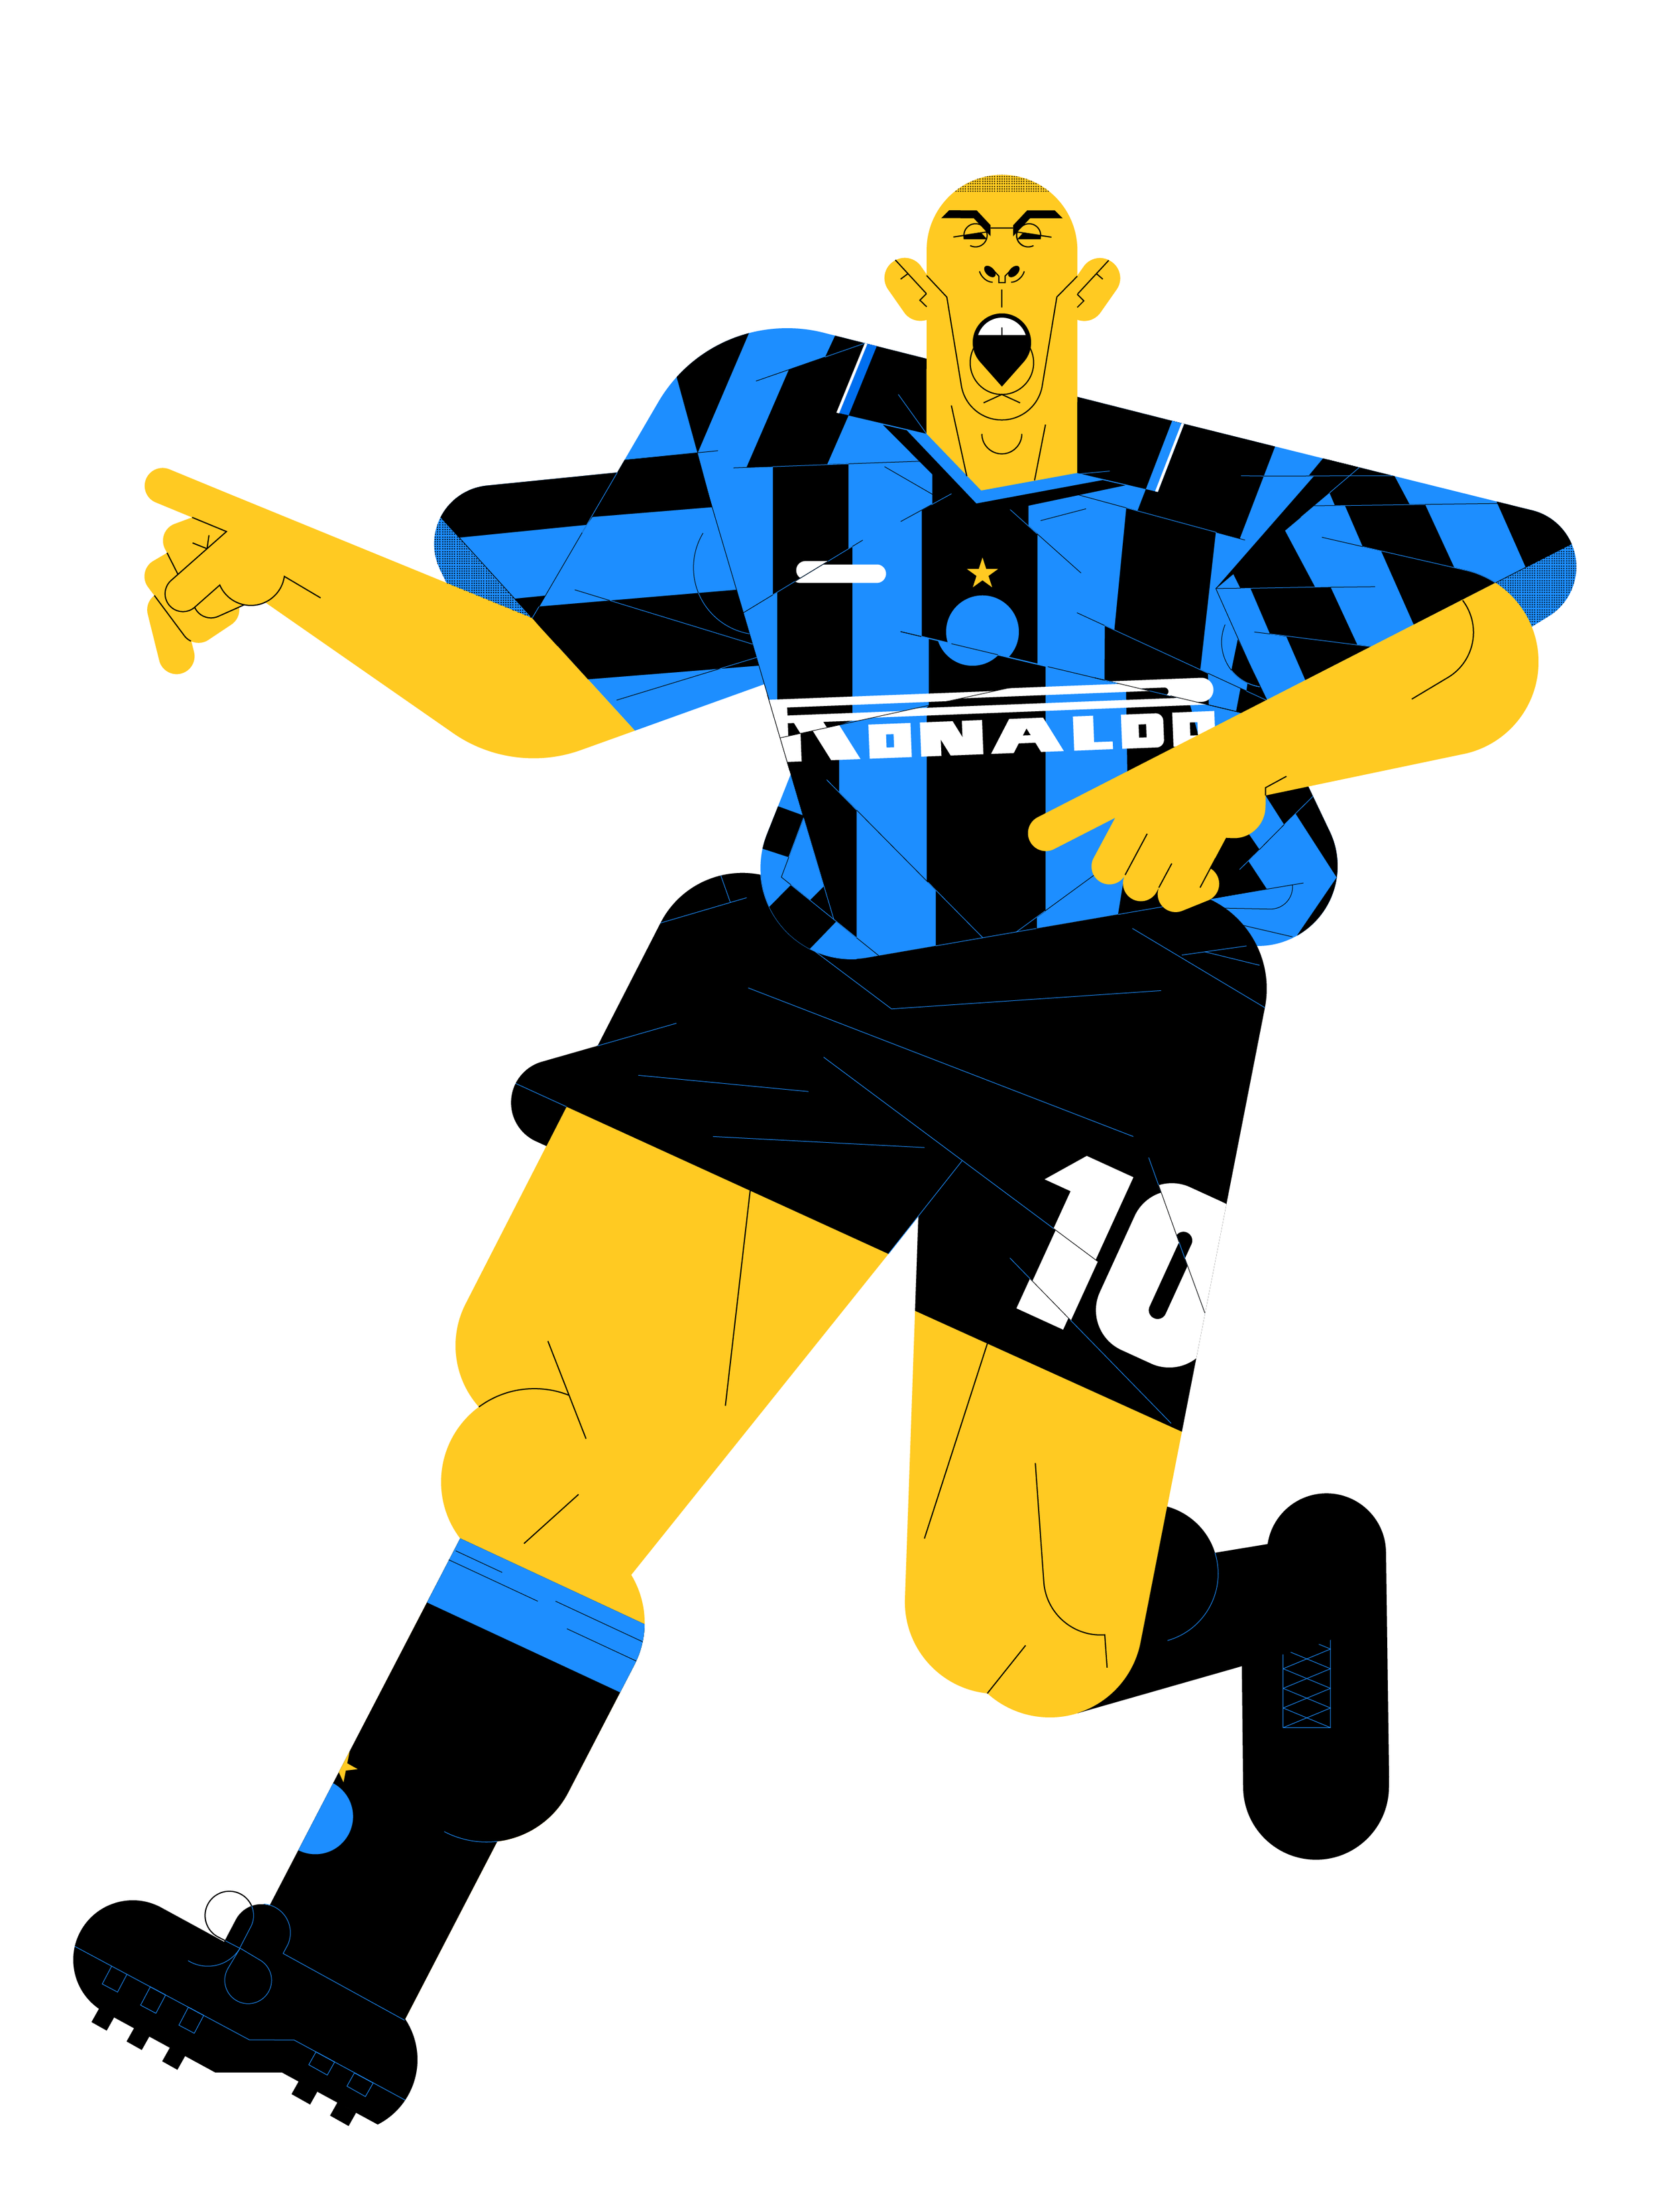 Football Players_Ronaldo 9 studies_final player only.png